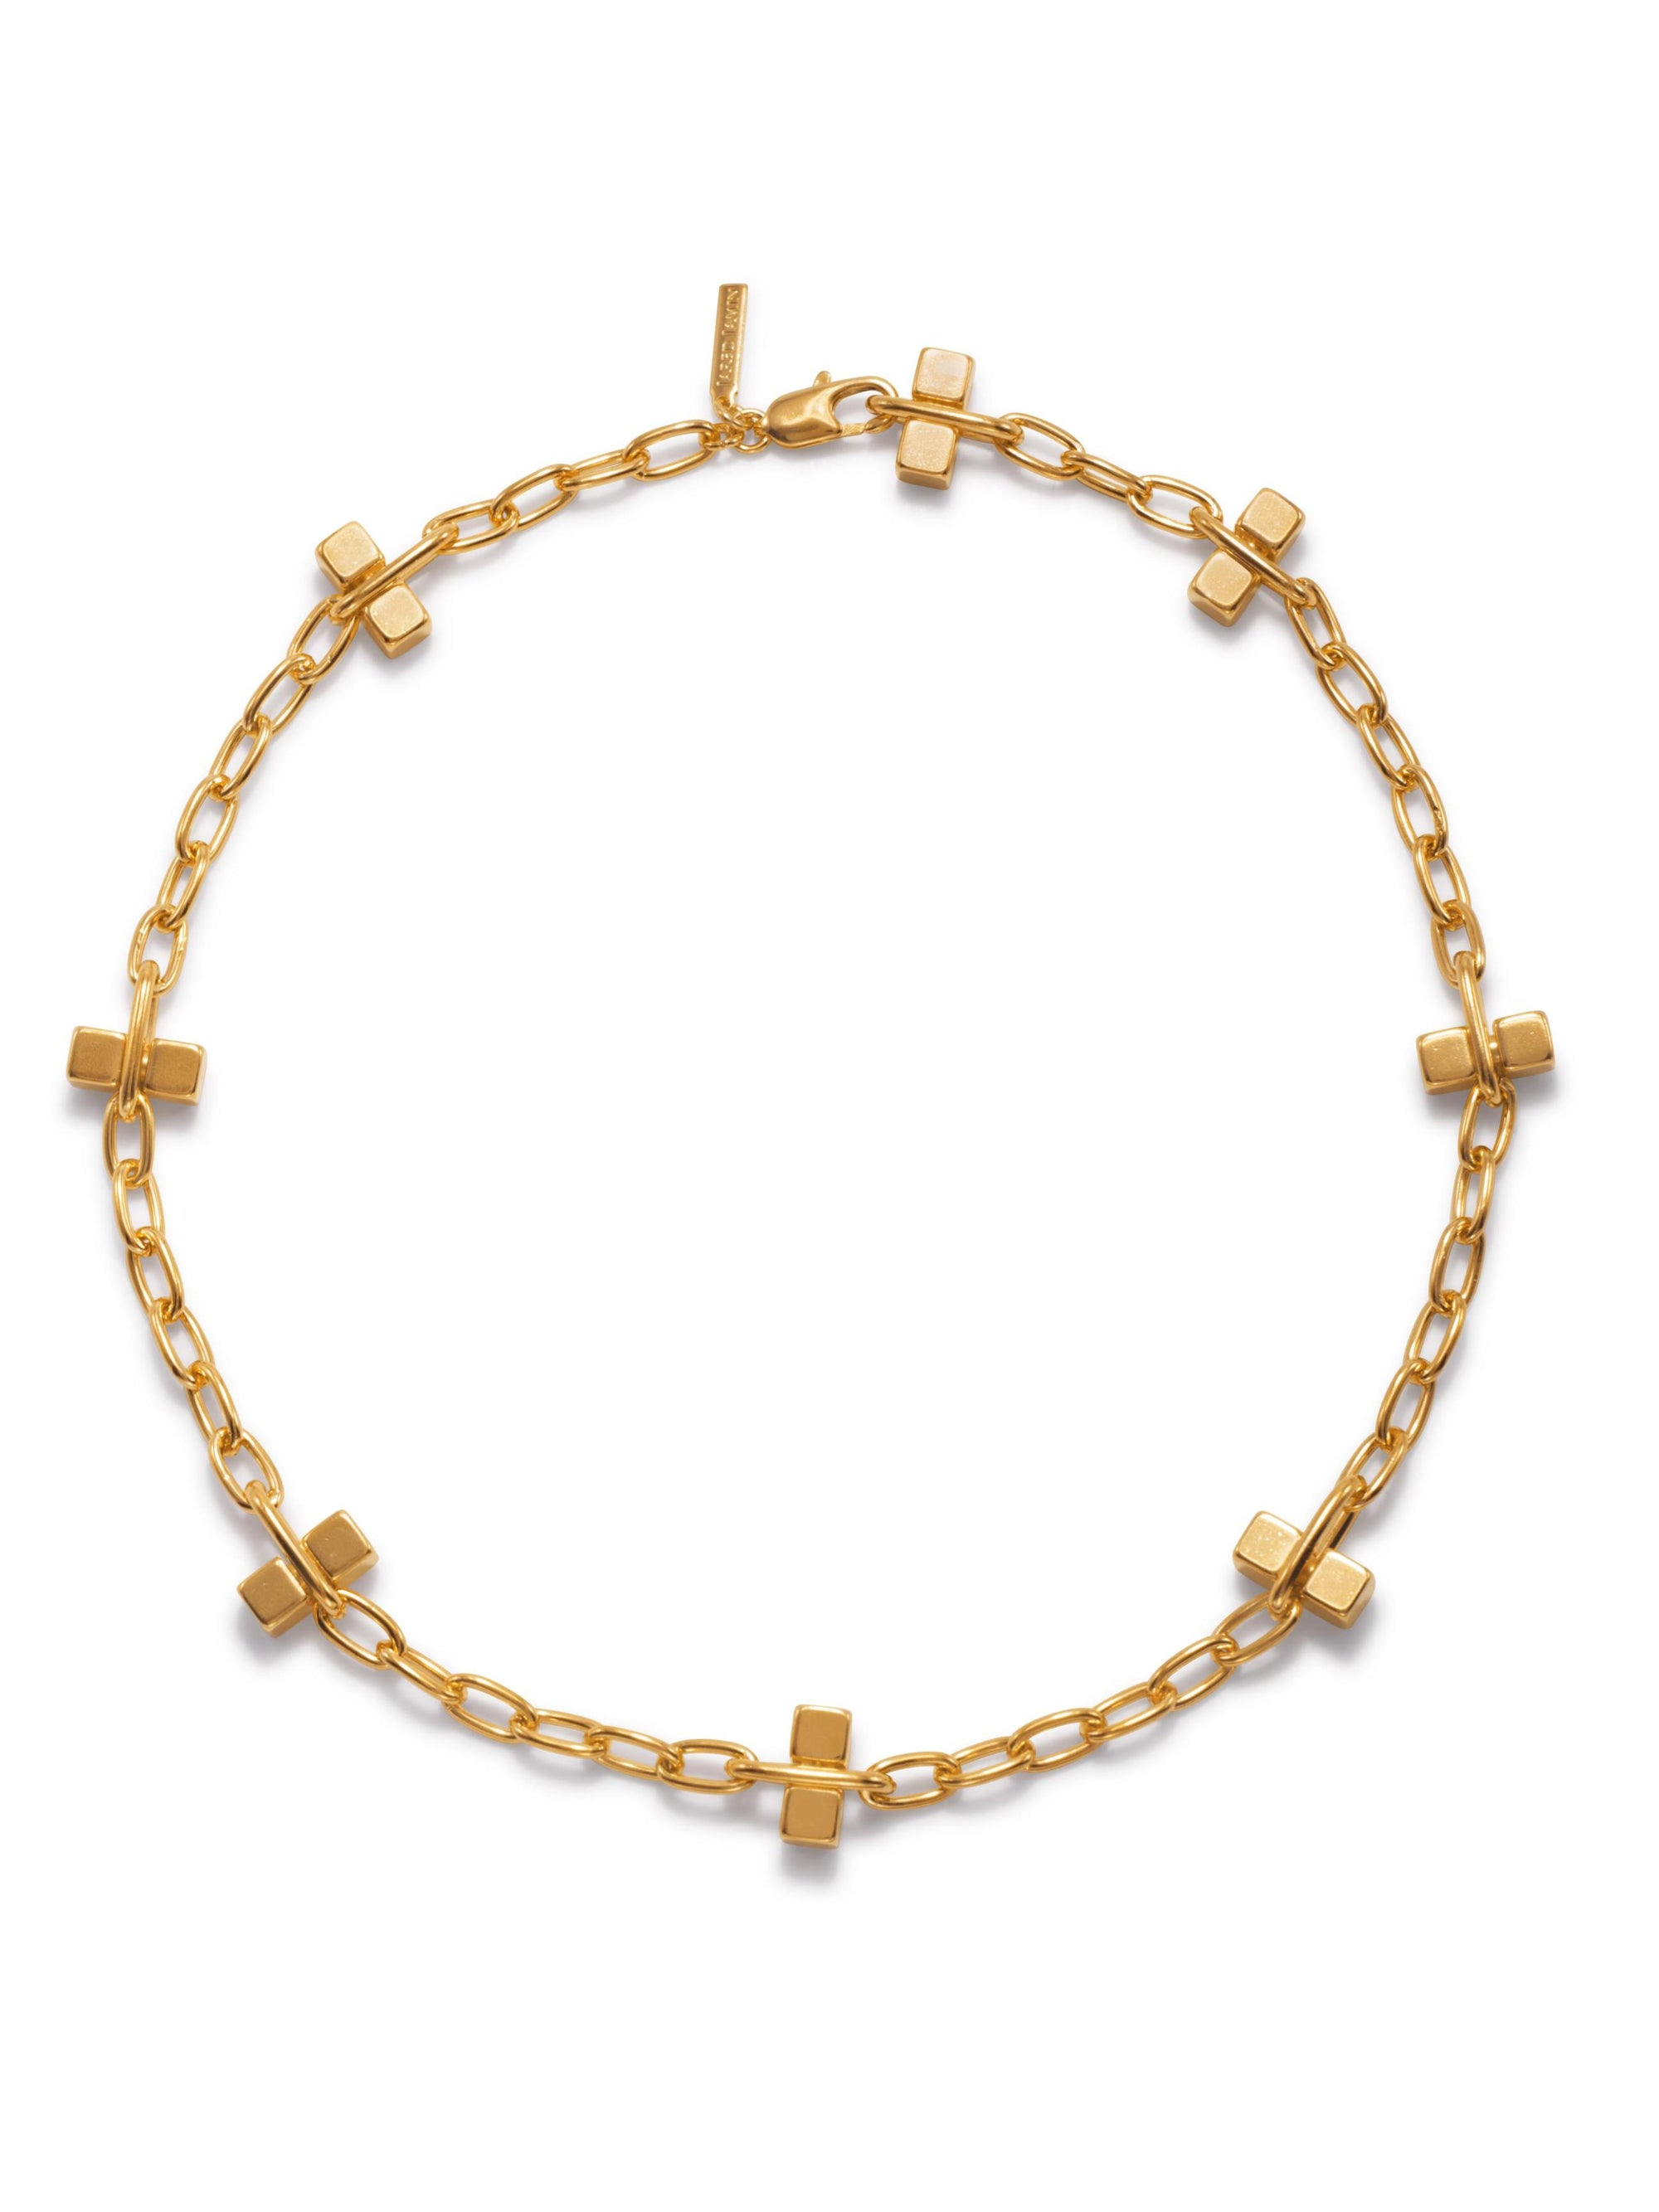 Gold Blockbuster Lite Choker Necklace-Necklaces-JAREDJAMIN Jewelry Online-24 inches-JARED JAMIN